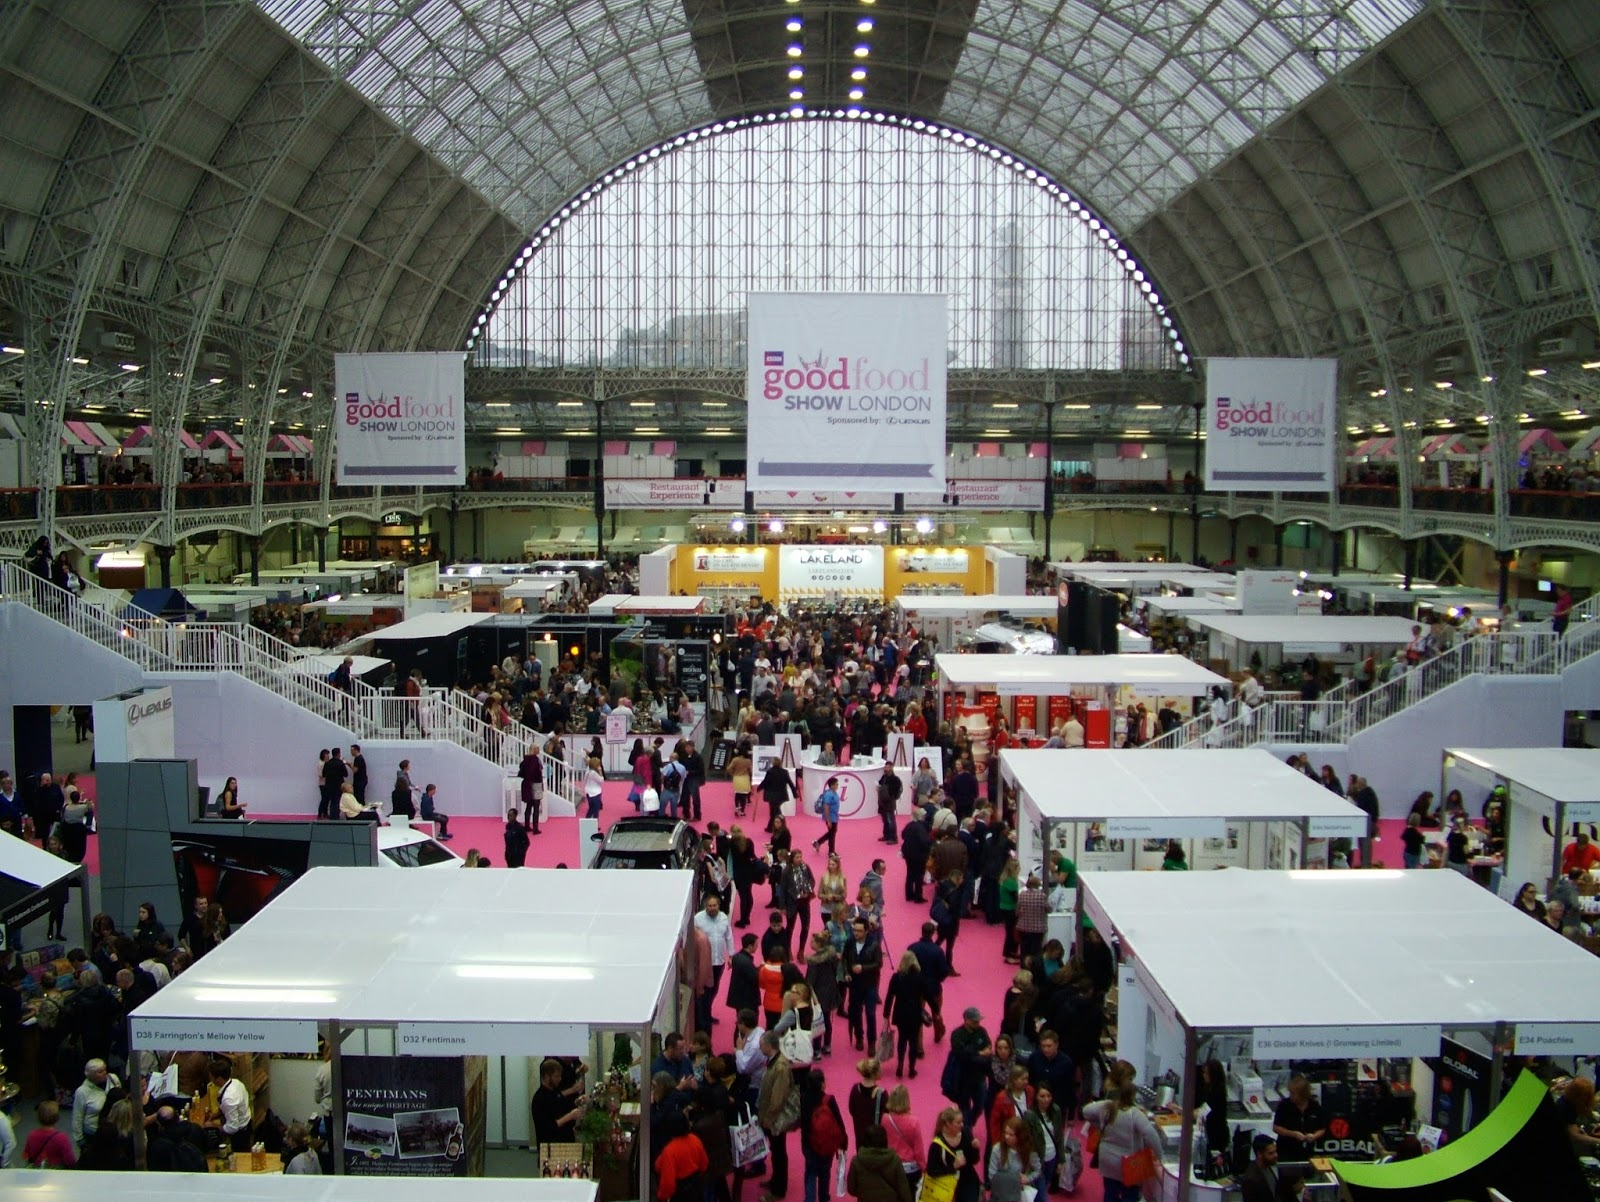 Events: BBC Good Food Show London